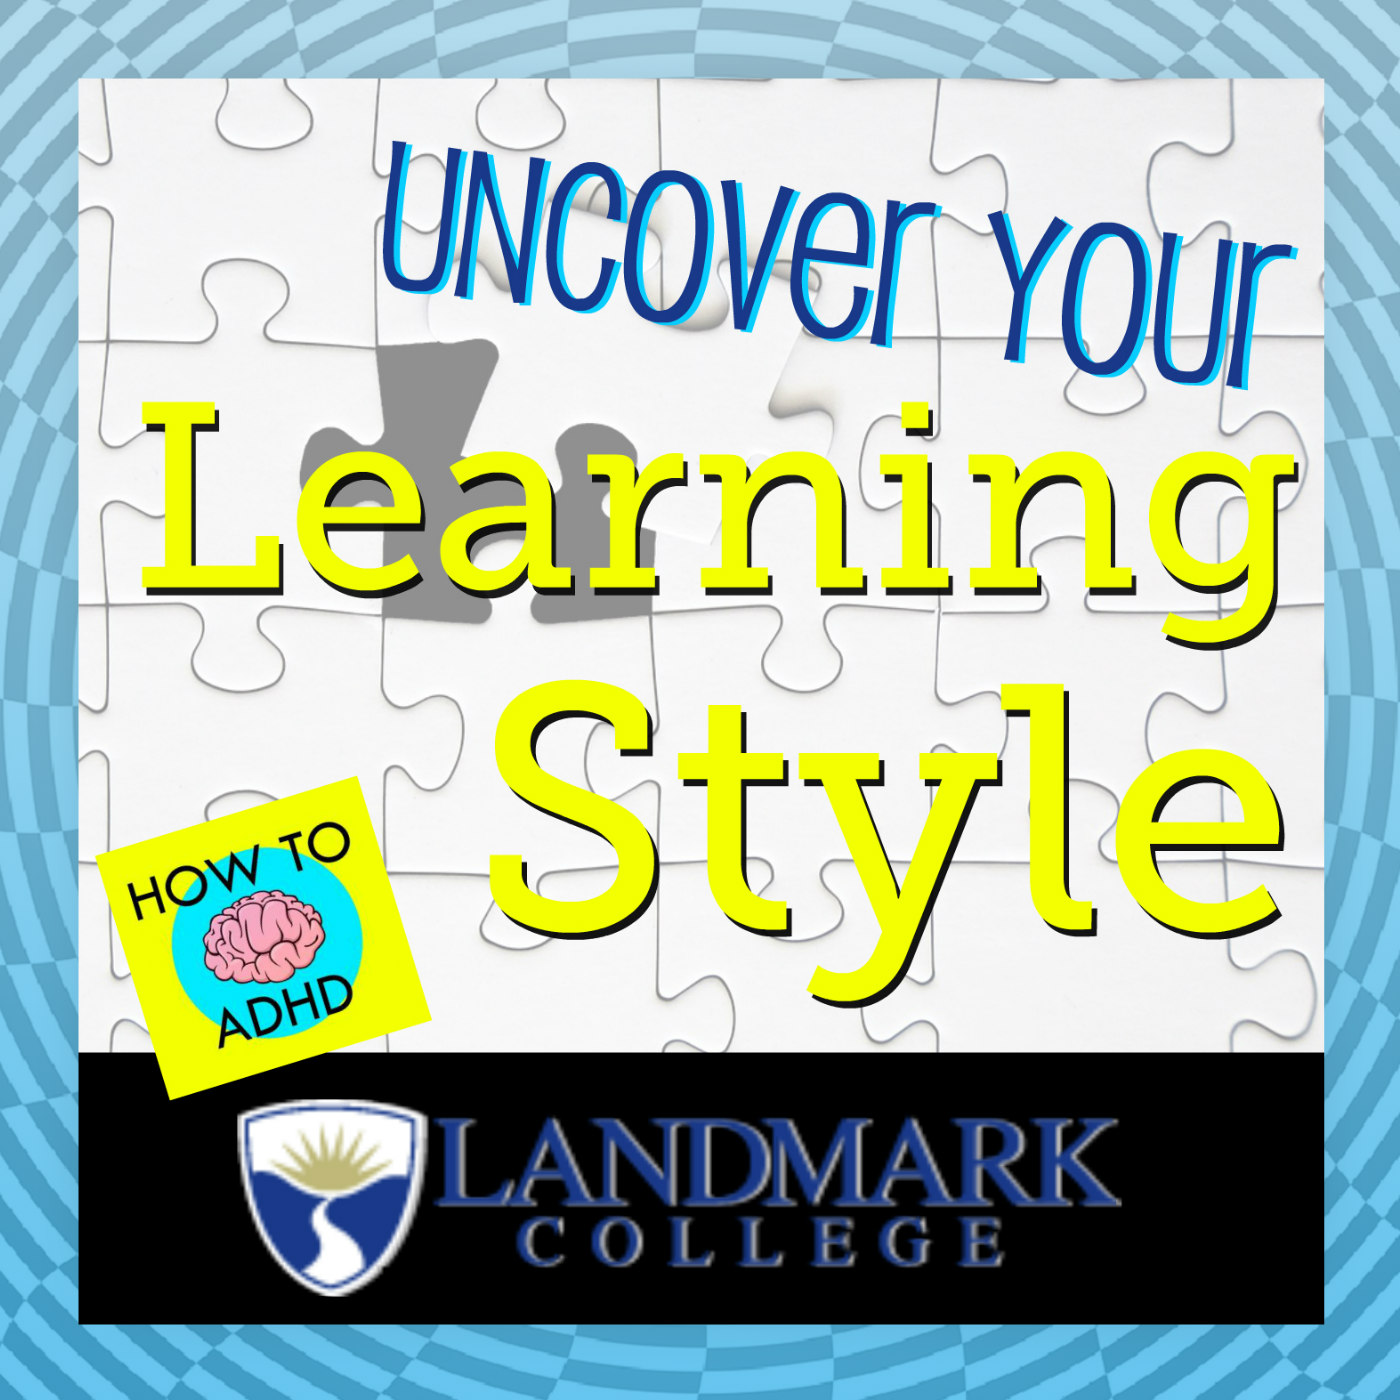 Uncovering Your Learning Style with How to ADHD & Landmark College